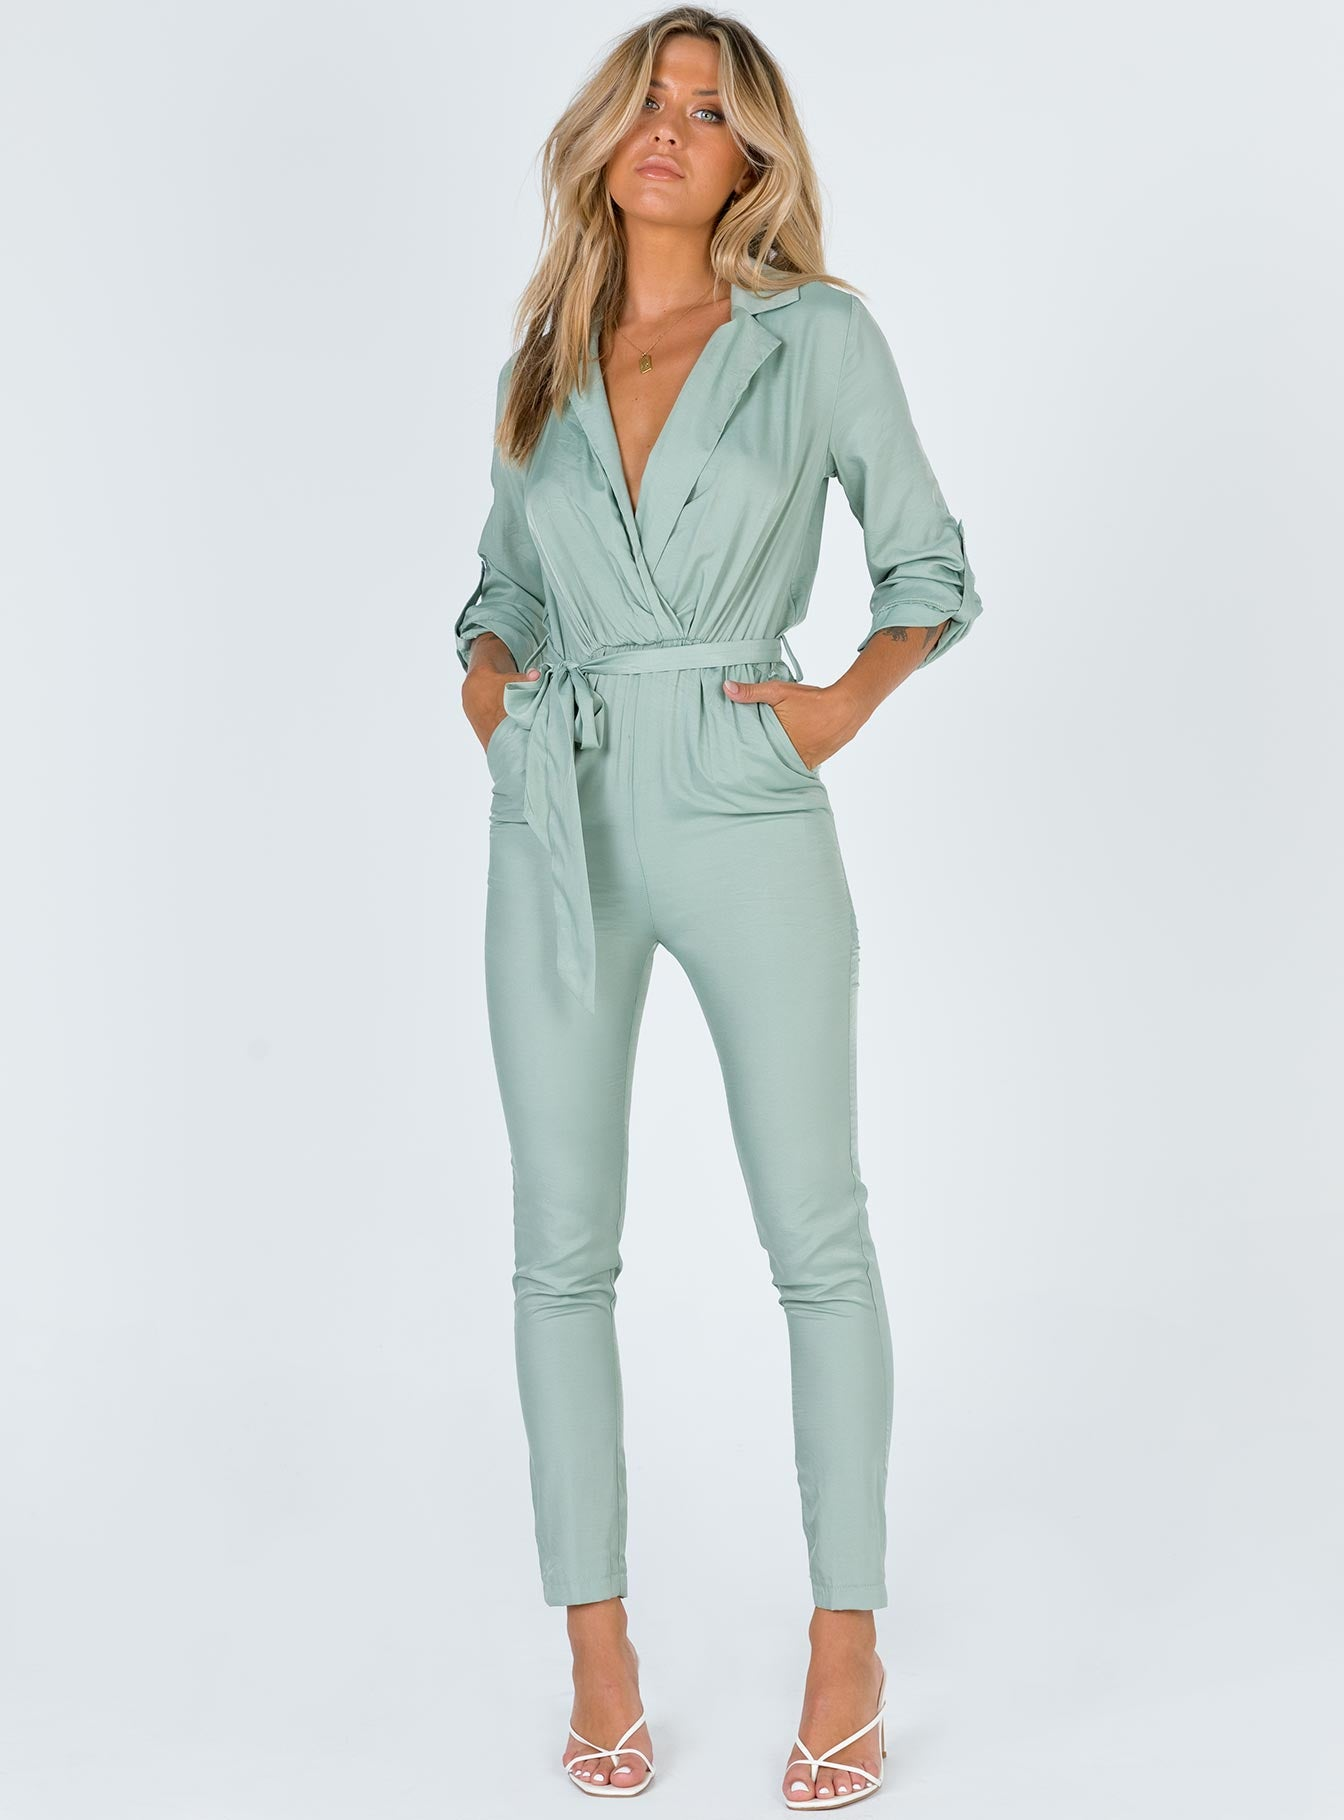 Junapher Jumpsuit